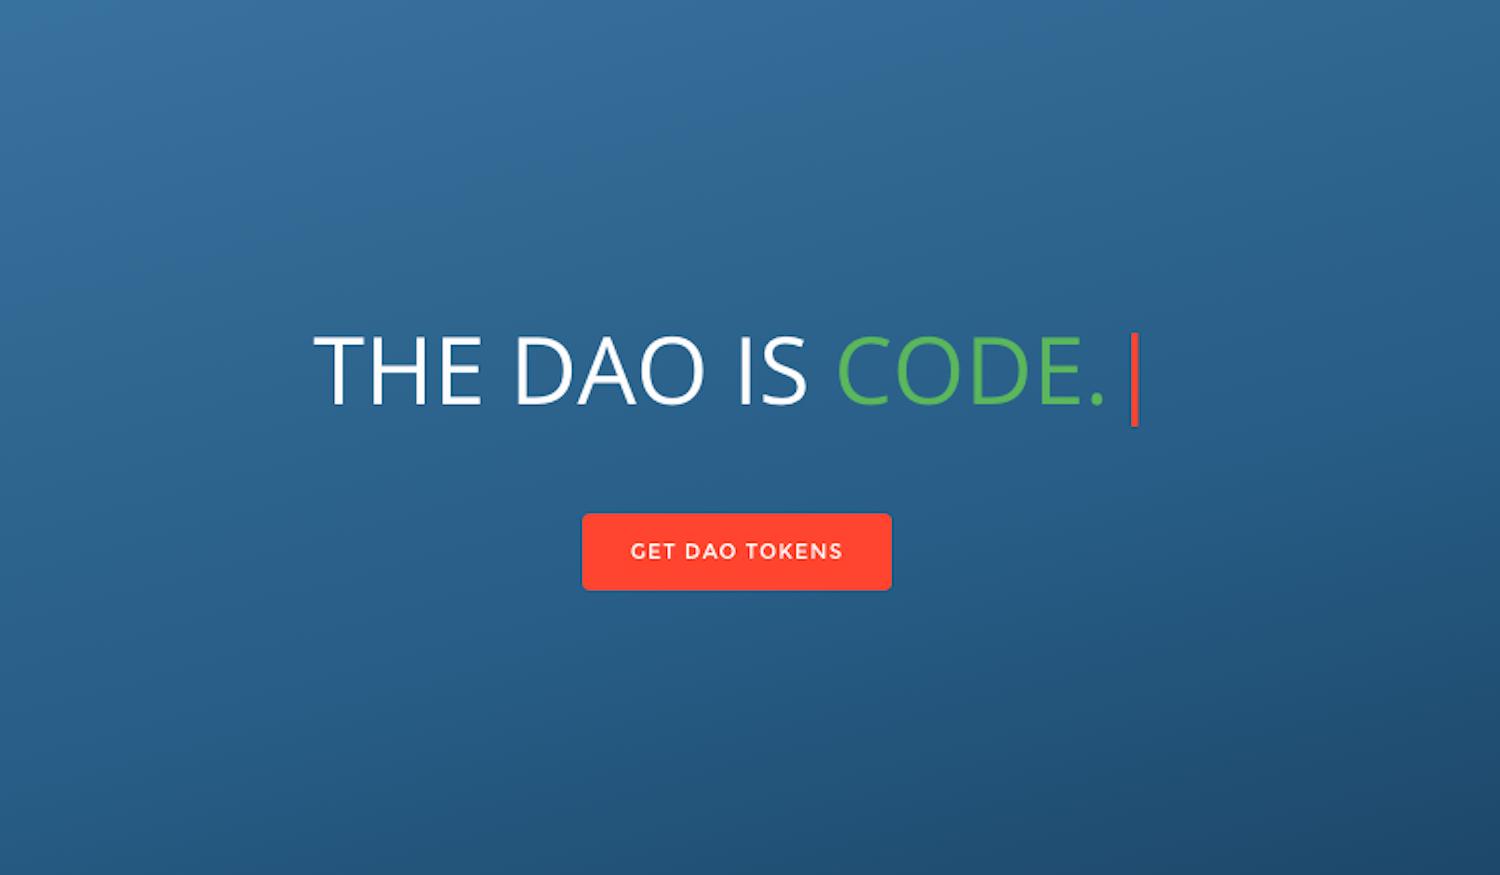 The DAO: Or How A Leaderless Ethereum Project Raised $50 Million - CoinDesk